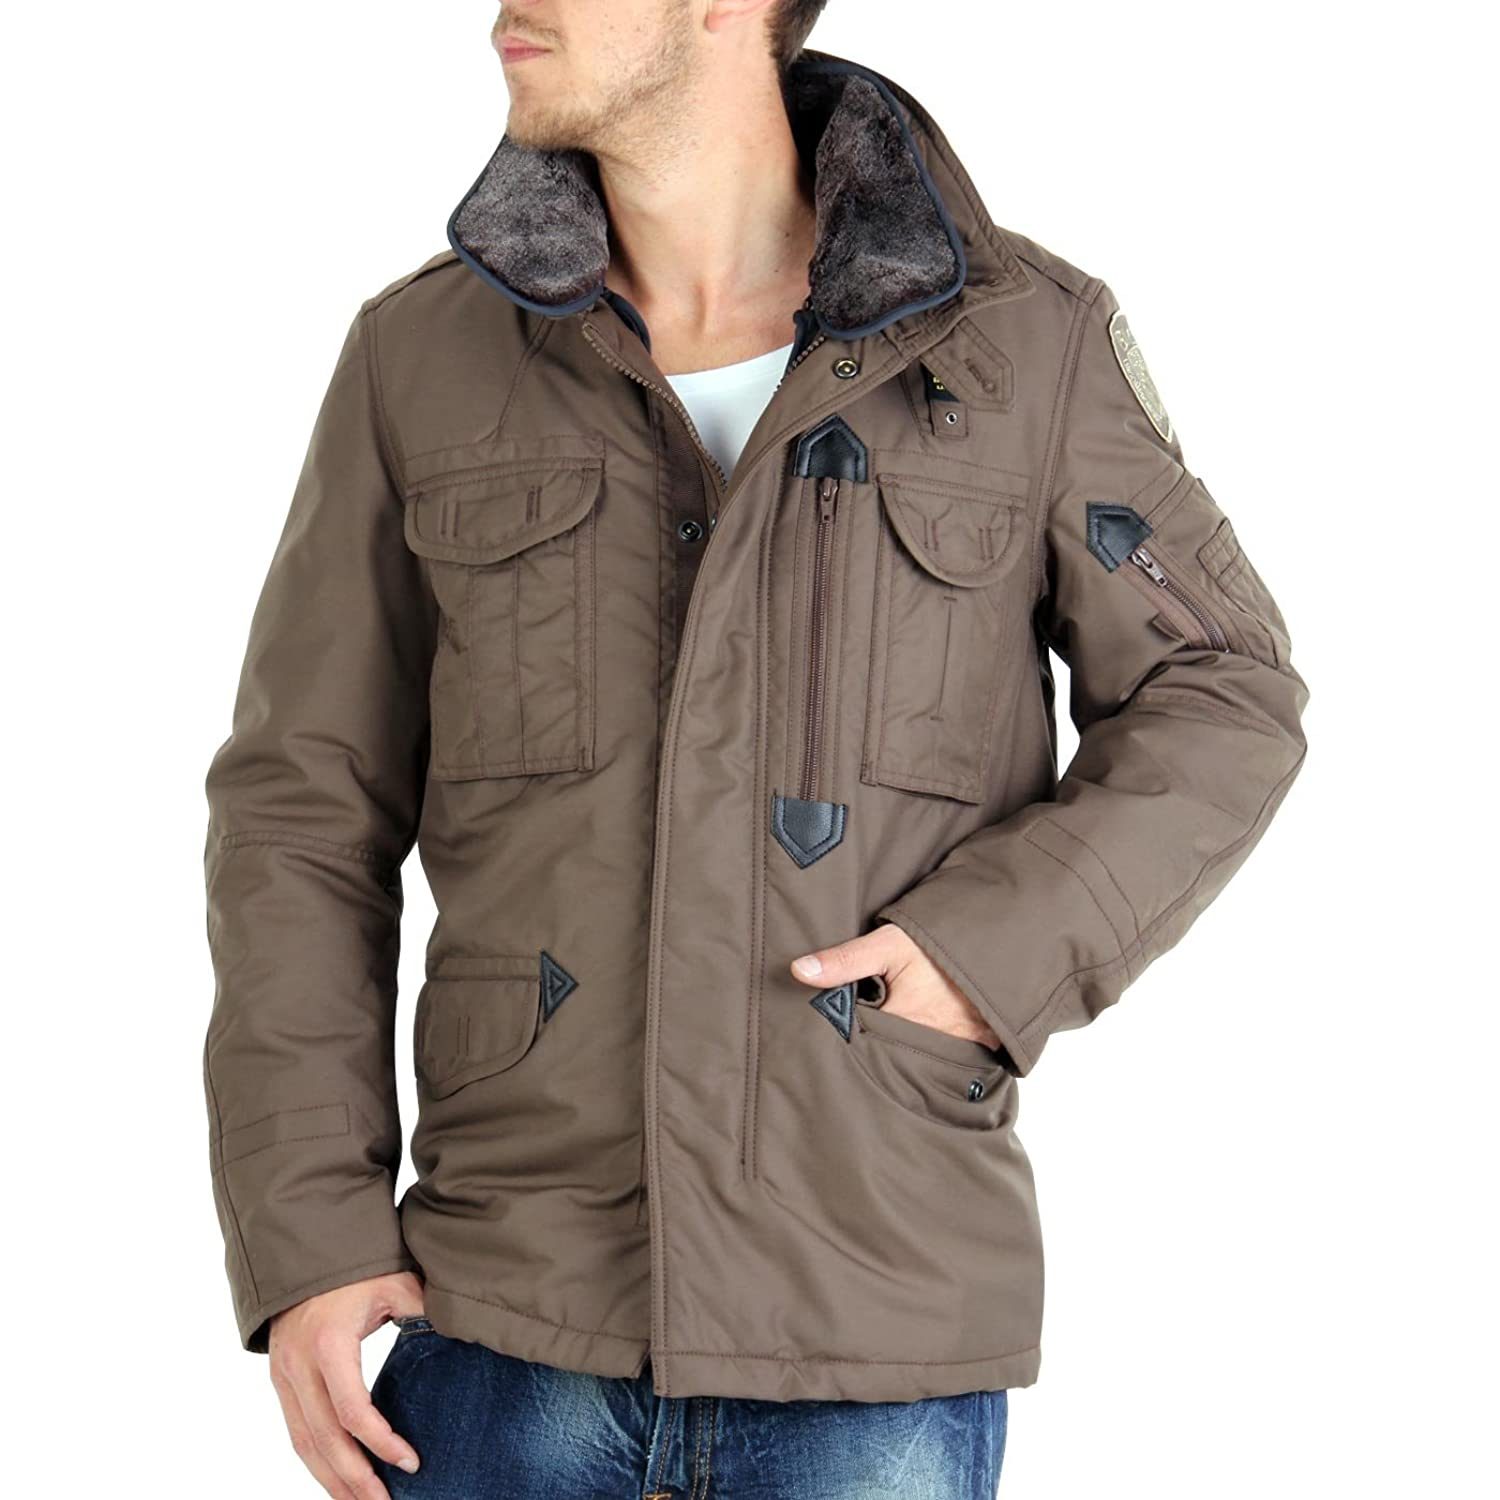 BLAUER USA Herren Daunenjacke 2 in1 Brown 0447